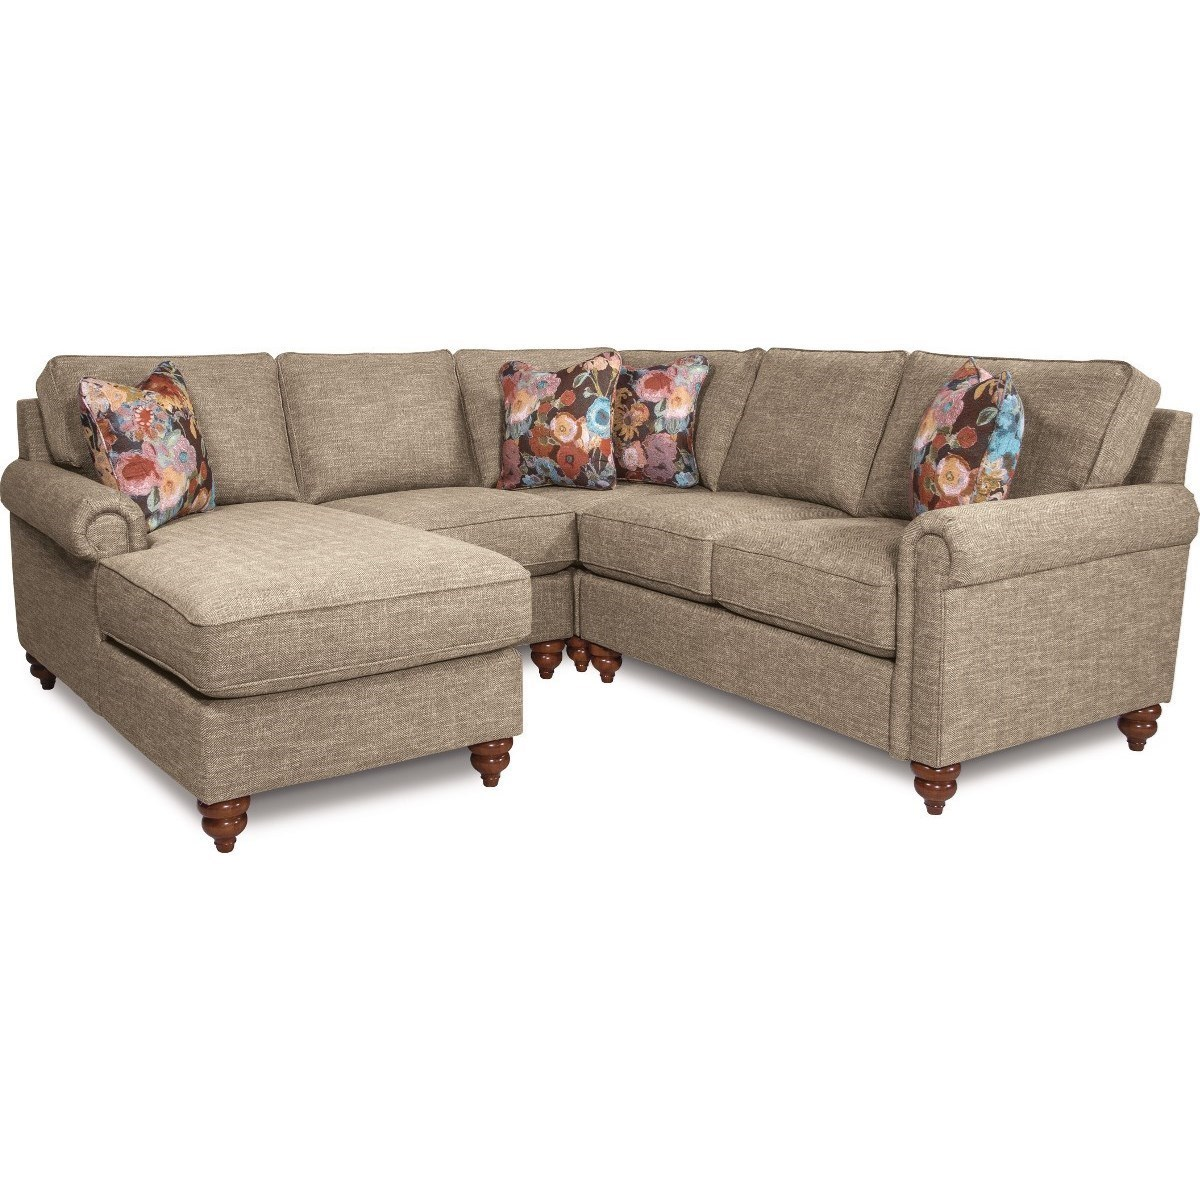 sofa w chaise corner bed black leather la z boy leighton traditional four piece sectional with right arm sitting